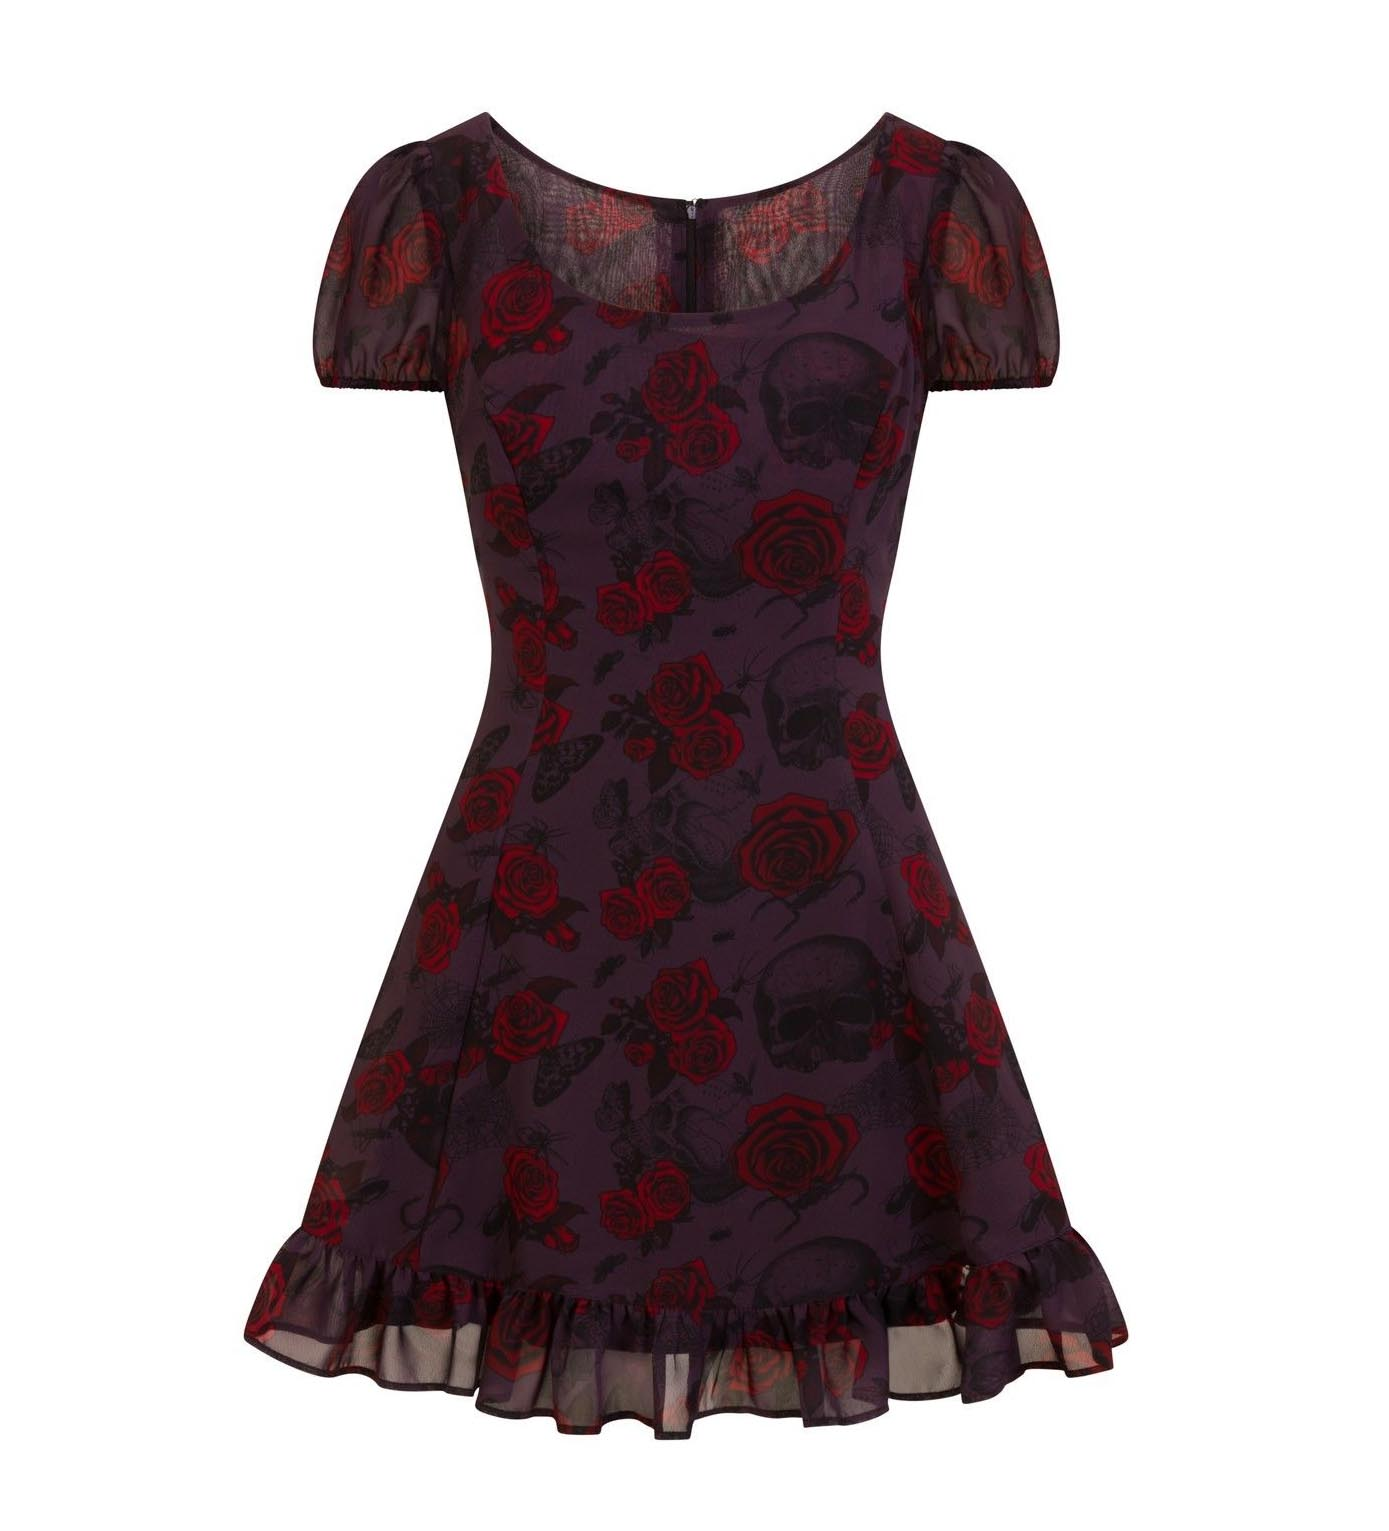 Hell-Bunny-Goth-Floaty-Mini-Dress-BUGS-amp-ROSES-Skulls-Butterfly-Purple-All-Sizes thumbnail 29